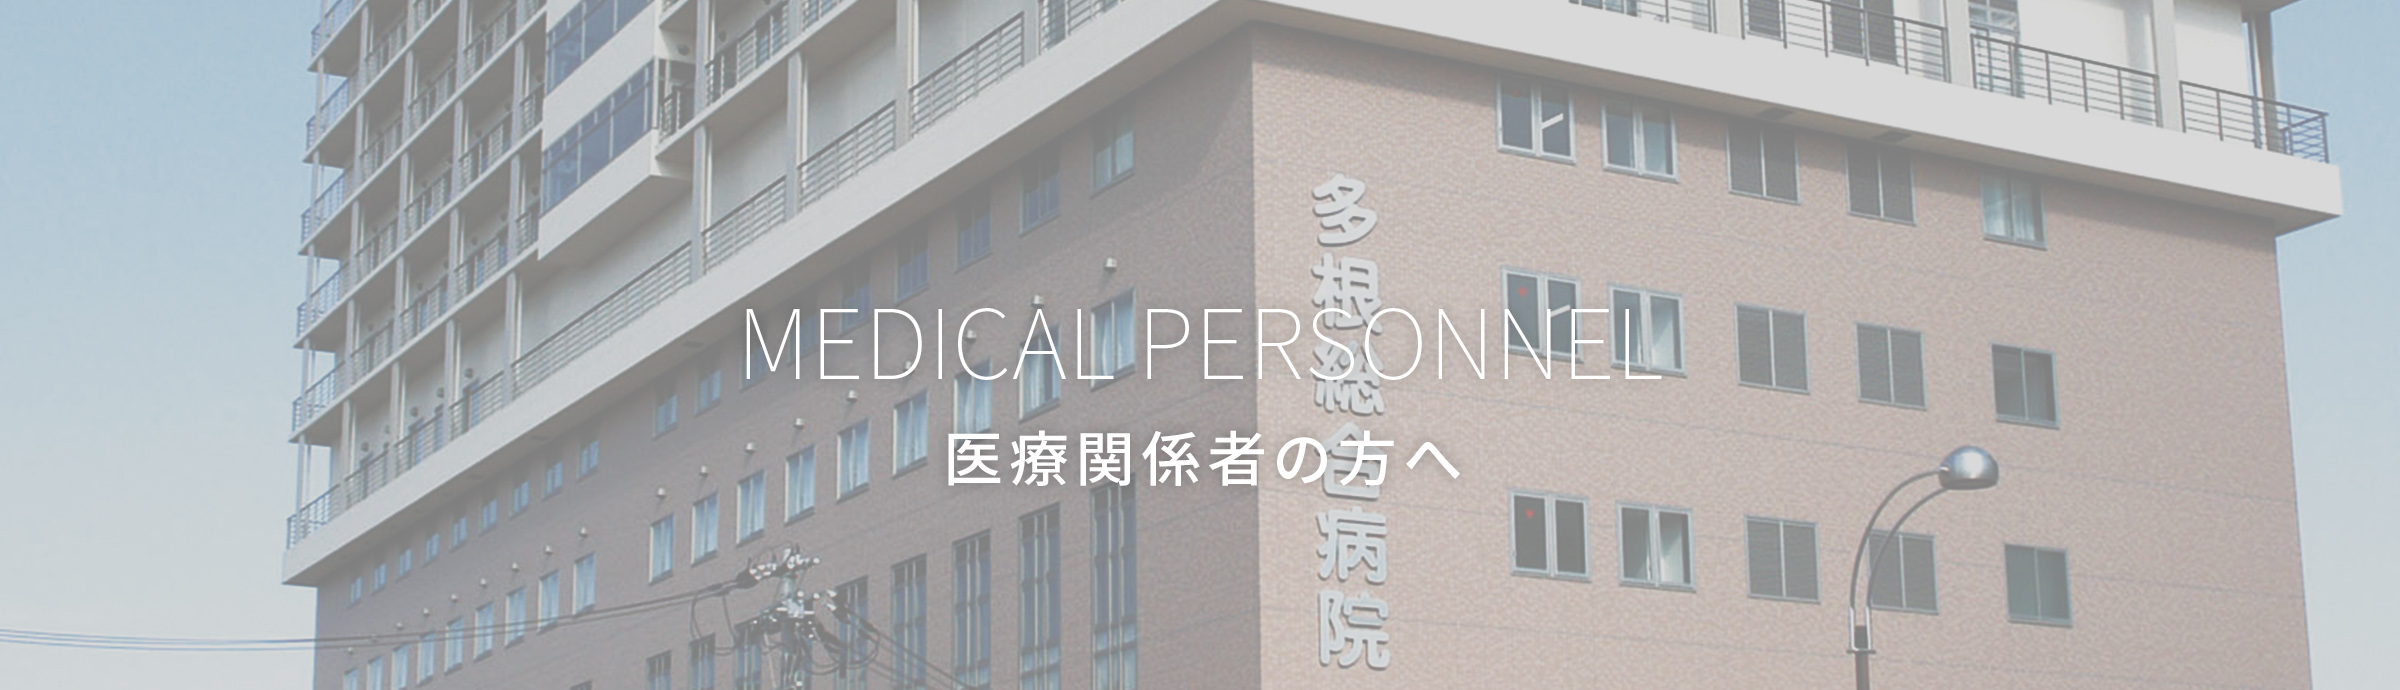 MEDICAL PERSONNEL 医療関係者の方へ